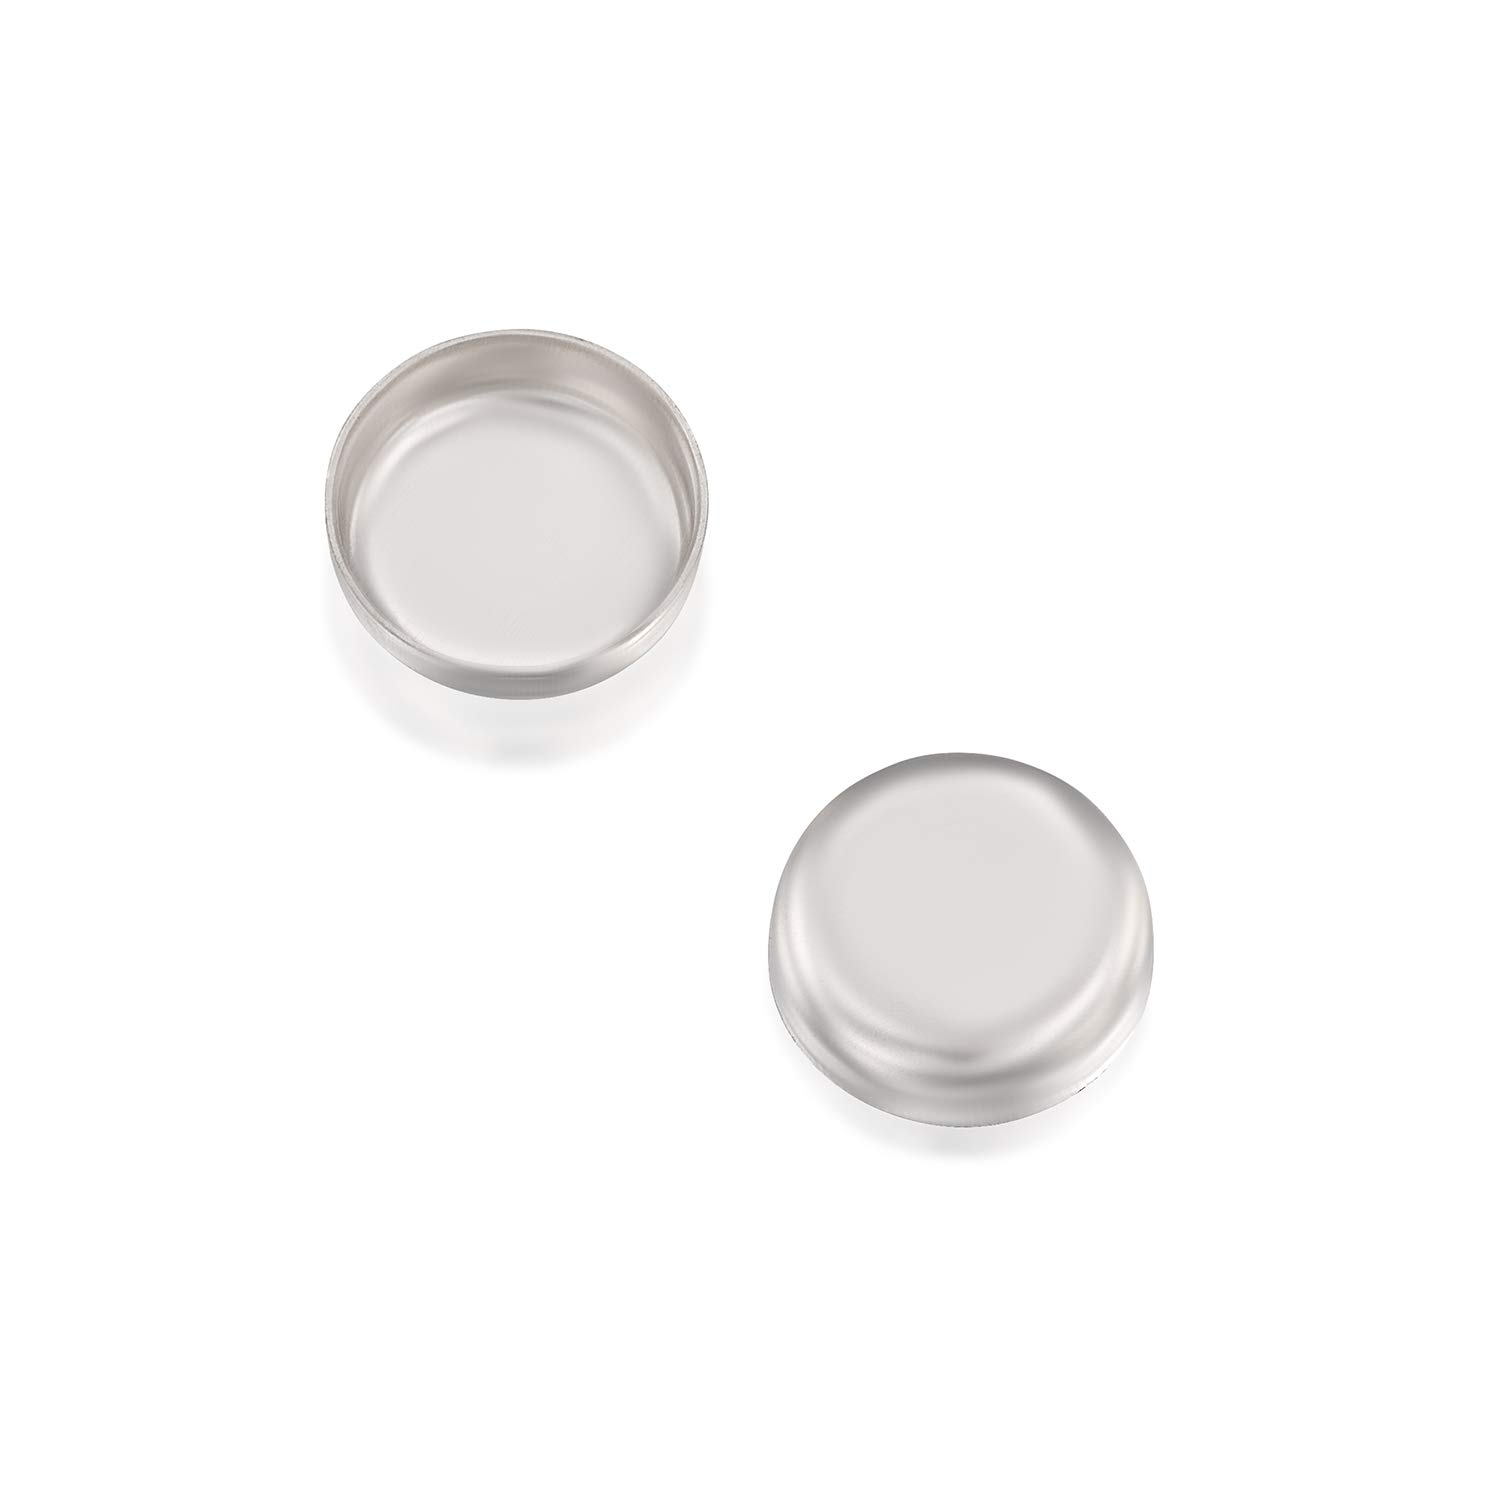 Stera Jewelry 12 Pcs Round Setting 925 Sterling Silver 6 mm Bezel Cup Findings for Rings Pendants Charms Earrings